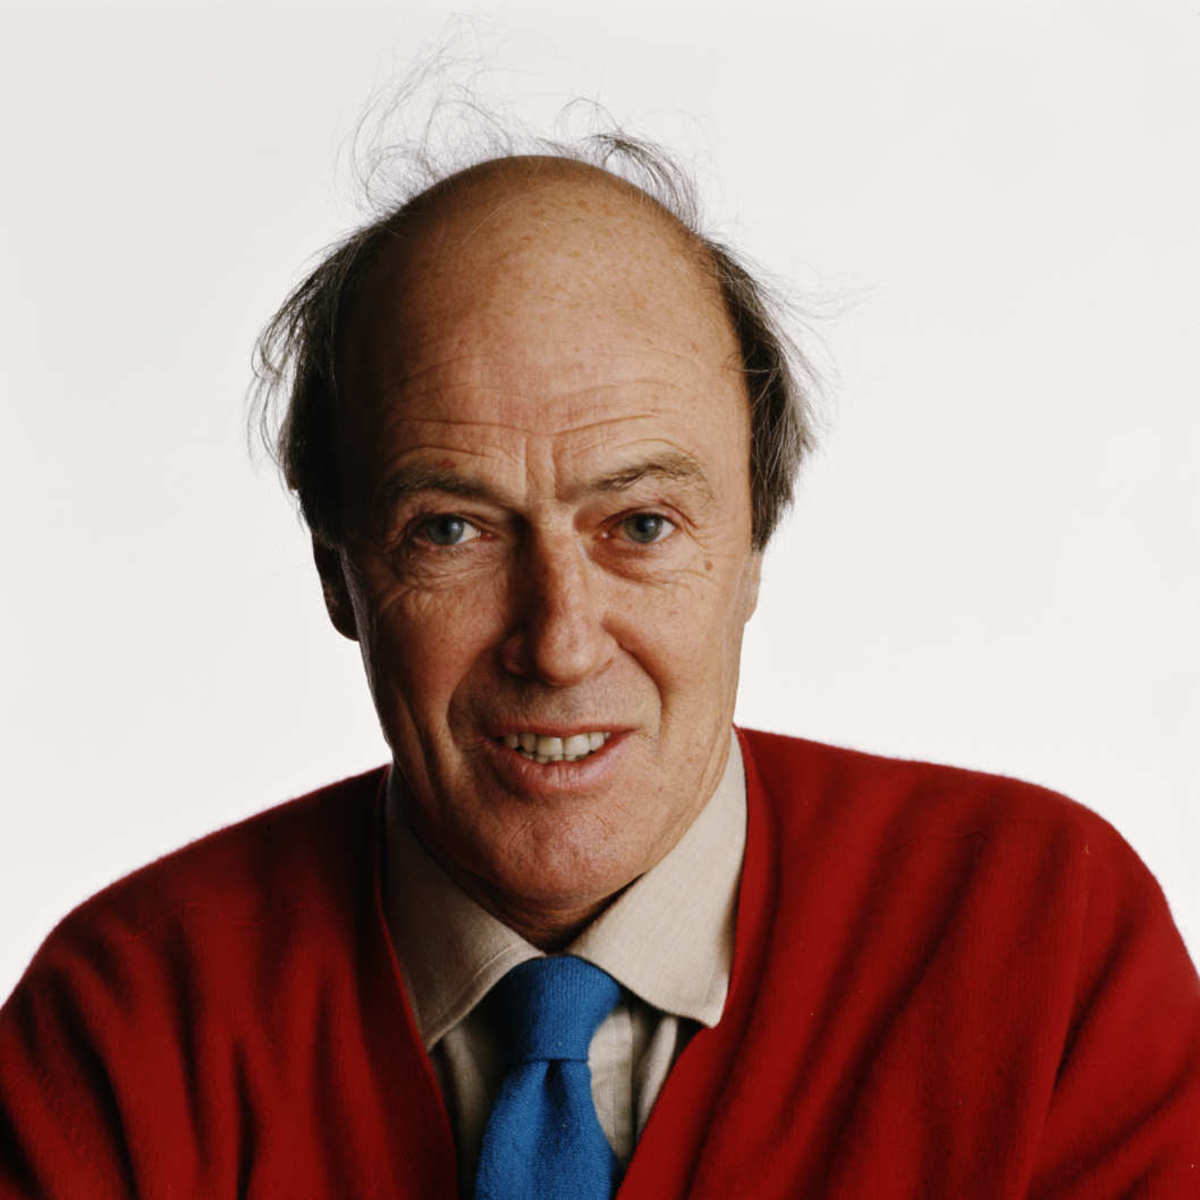 Roald Dahl: Legendary Writer and Children's Book Author